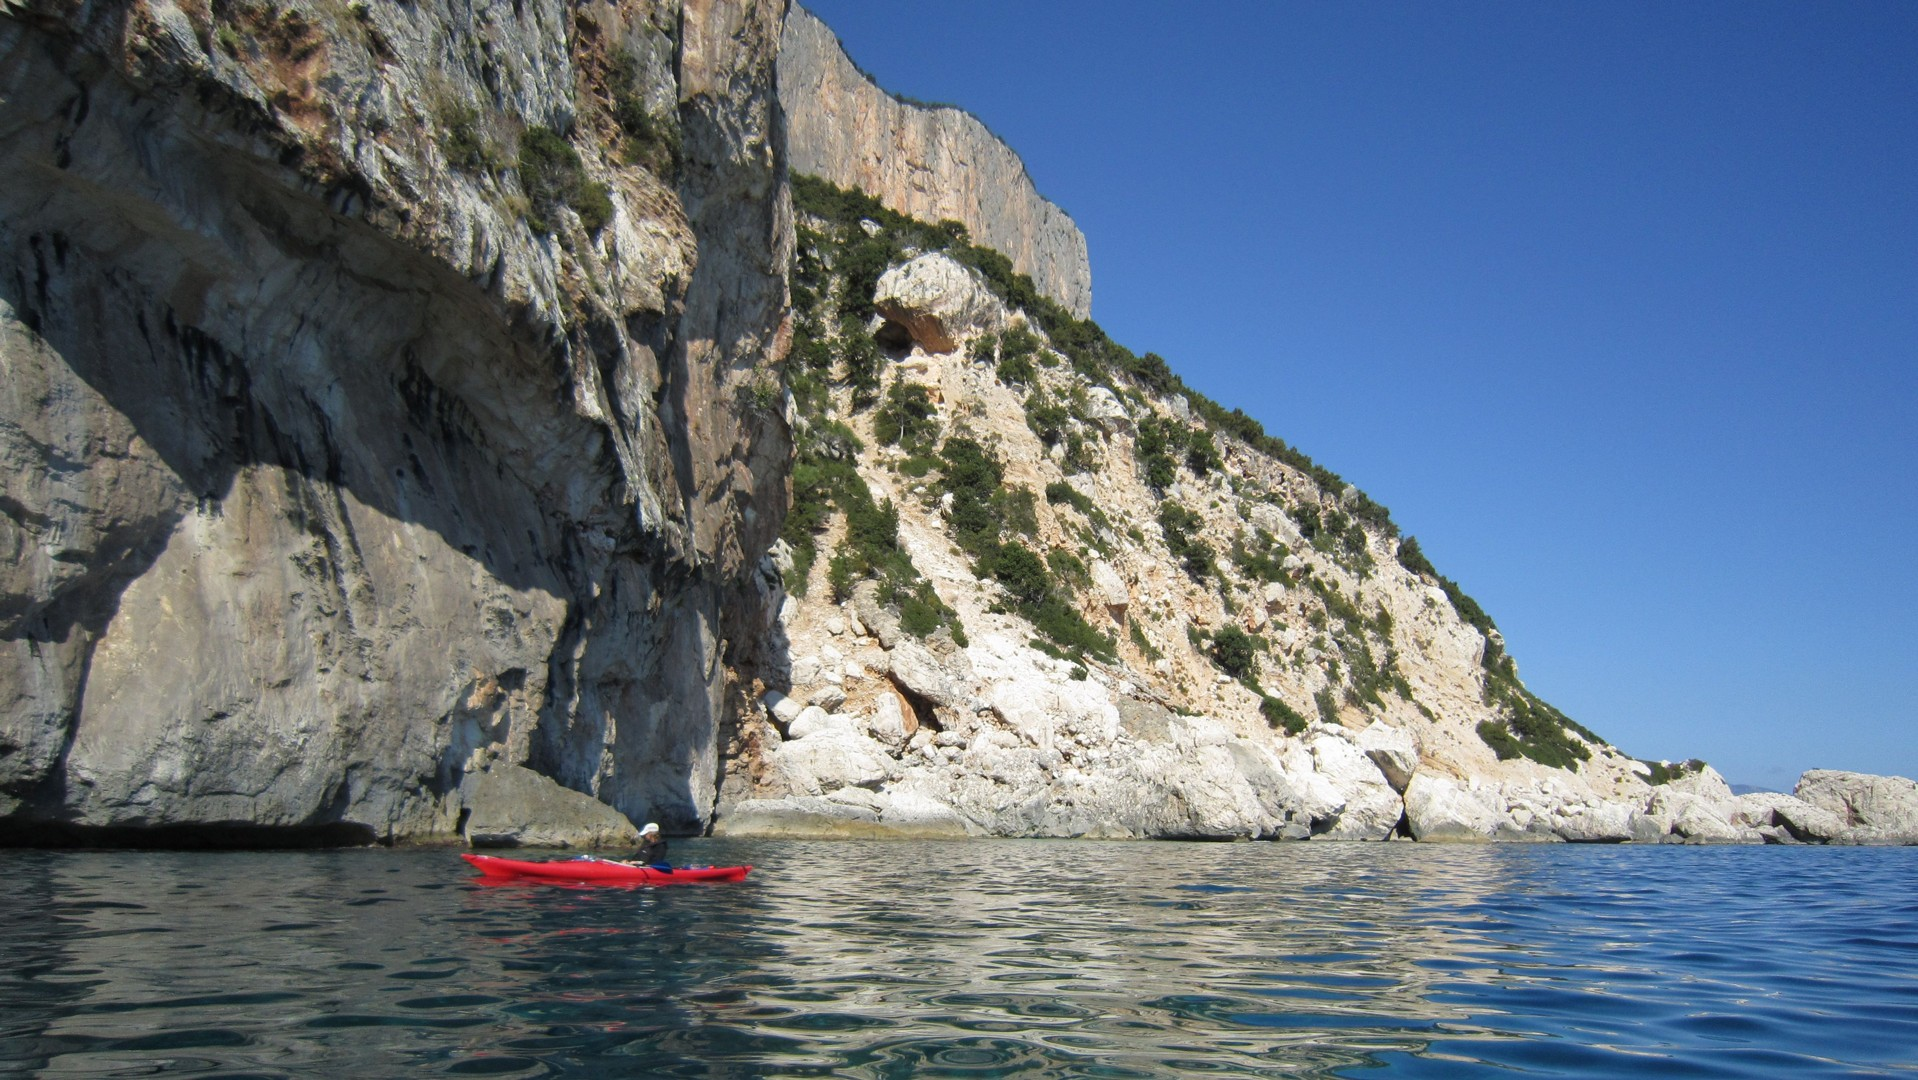 Kayak 2010 091.jpg - Sardinia - Daily Kayaking Trips - Kayaking